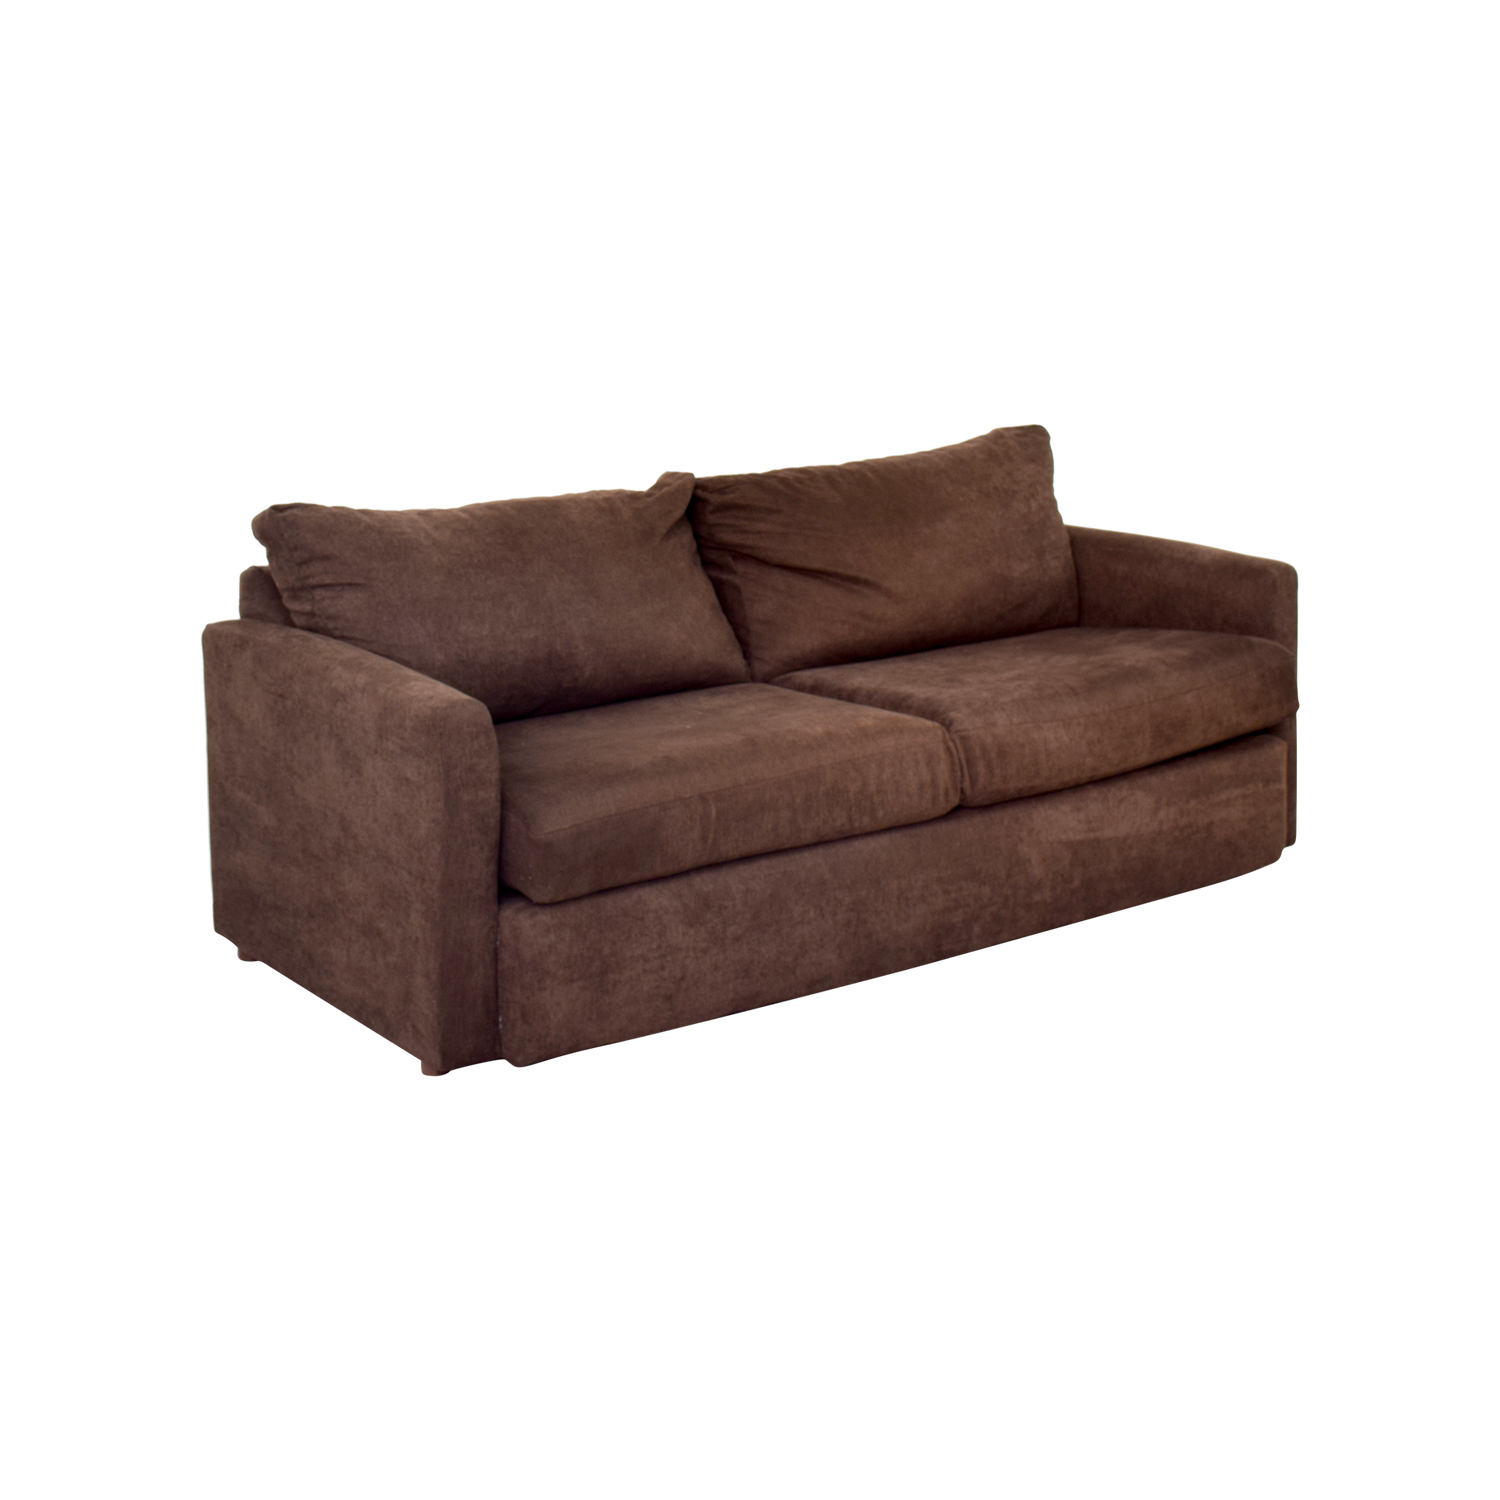 67 Off Bob S Furniture Bob S Furniture Brown Loveseat